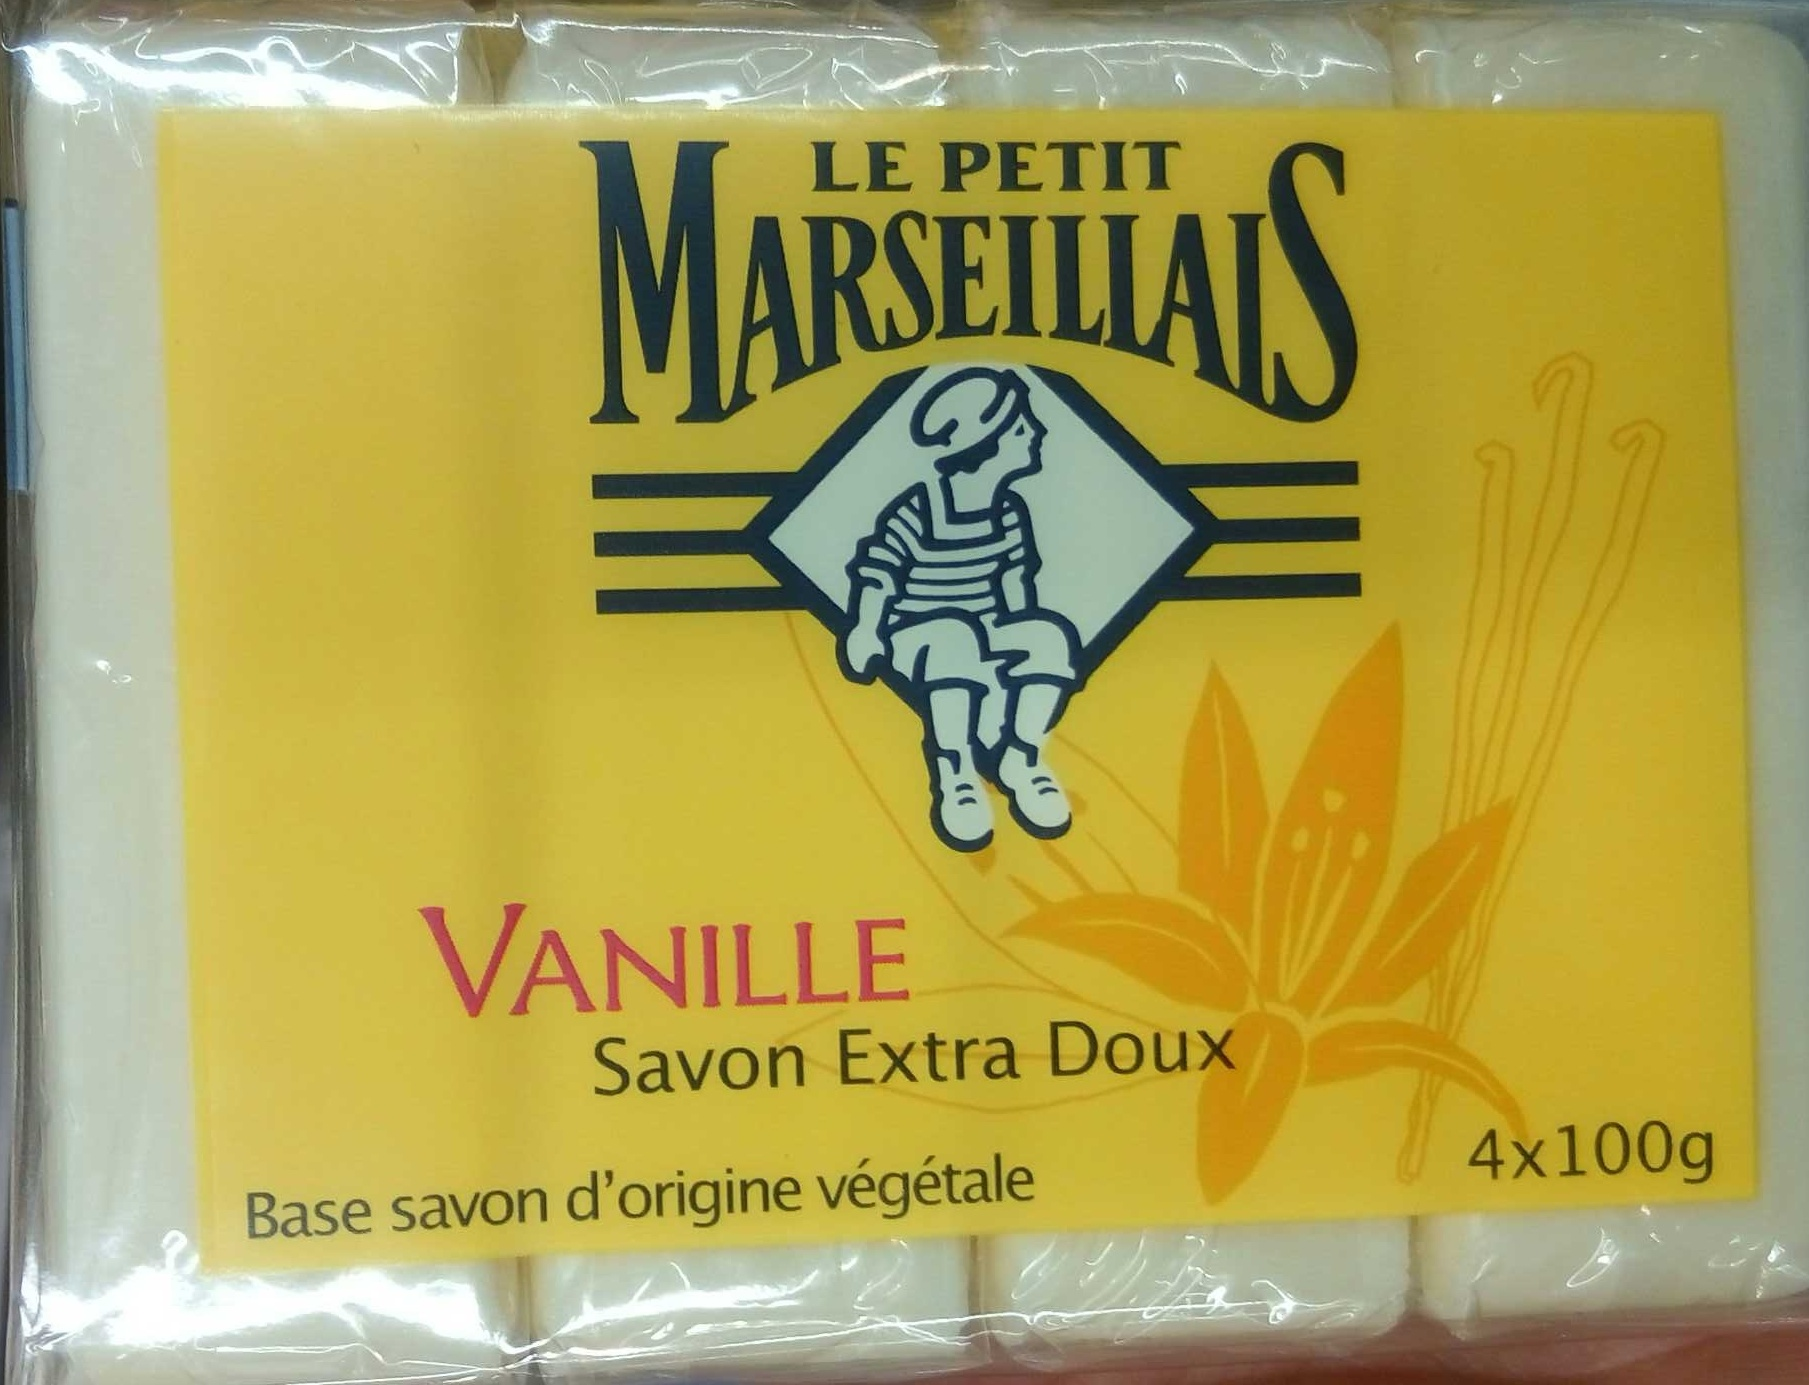 Savon extra doux Vanille - Product - fr